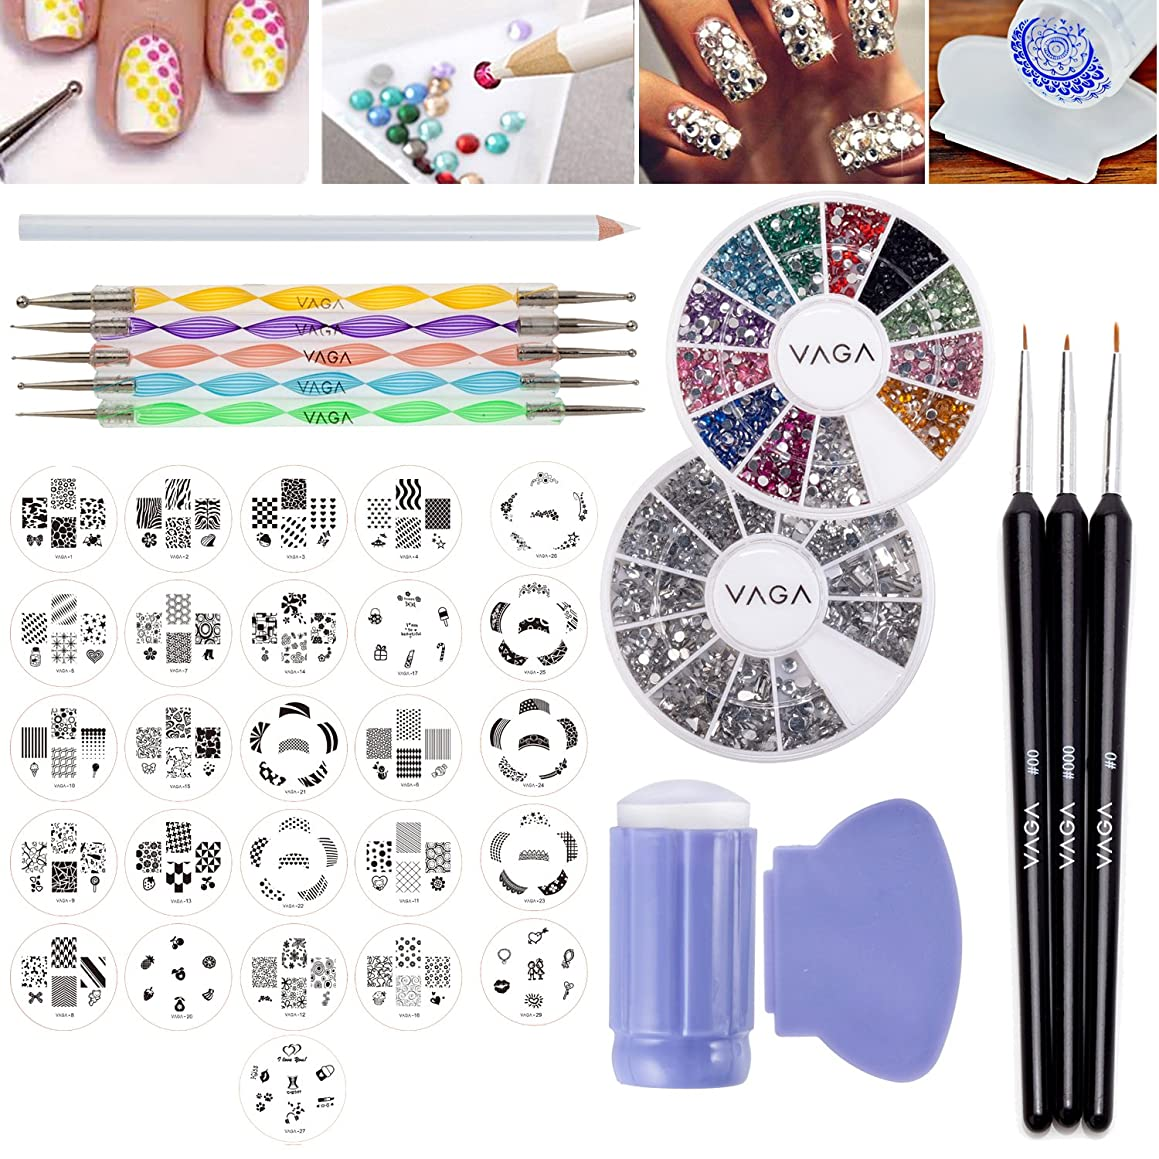 Nail Art Designs Set with 26 Stamping Plates, Wheels of 1200 Gemstones / Crystals / Gems Each, Stamper / Scraper Dotters / Dotting Tools, Nails Brushes and Rhinestones Decorations Picker Pencil